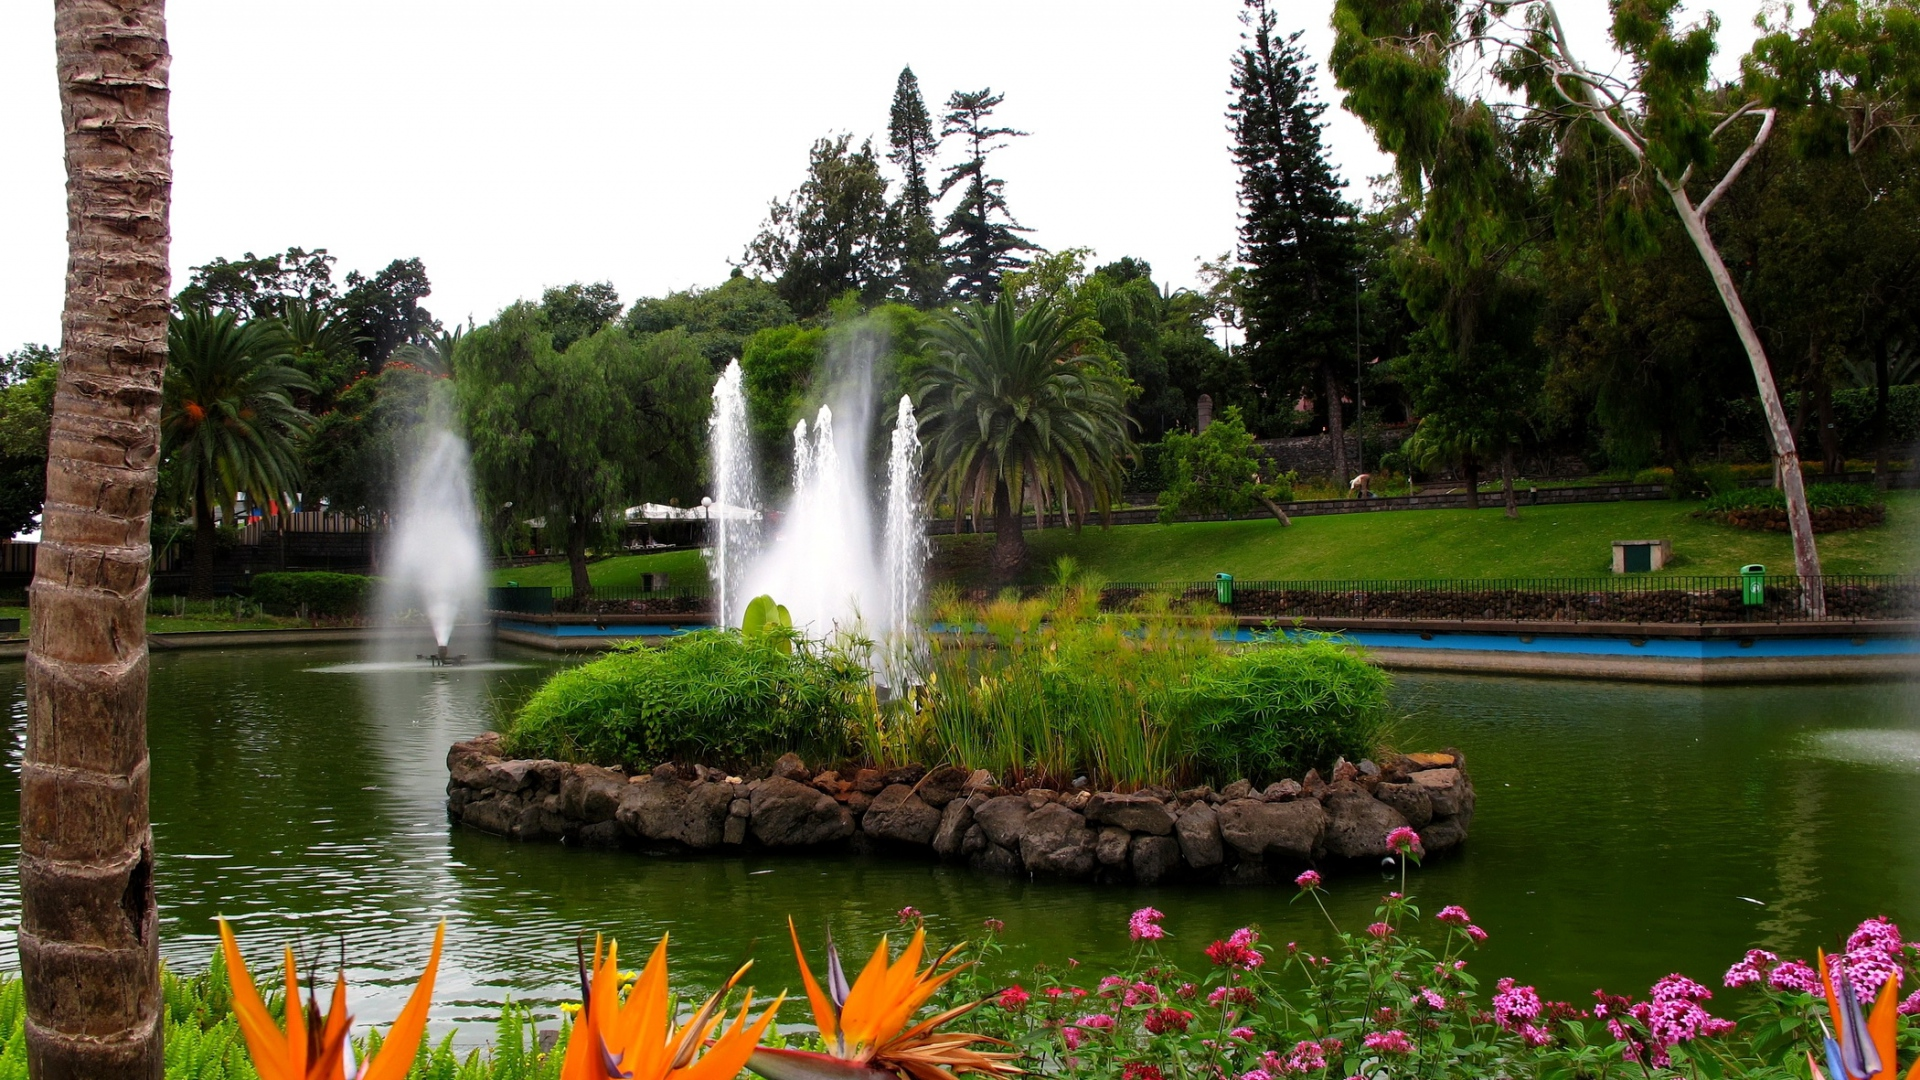 Flower Wallpapers Garden Free Hd For Desktop - Park With Fountains And Flowers , HD Wallpaper & Backgrounds